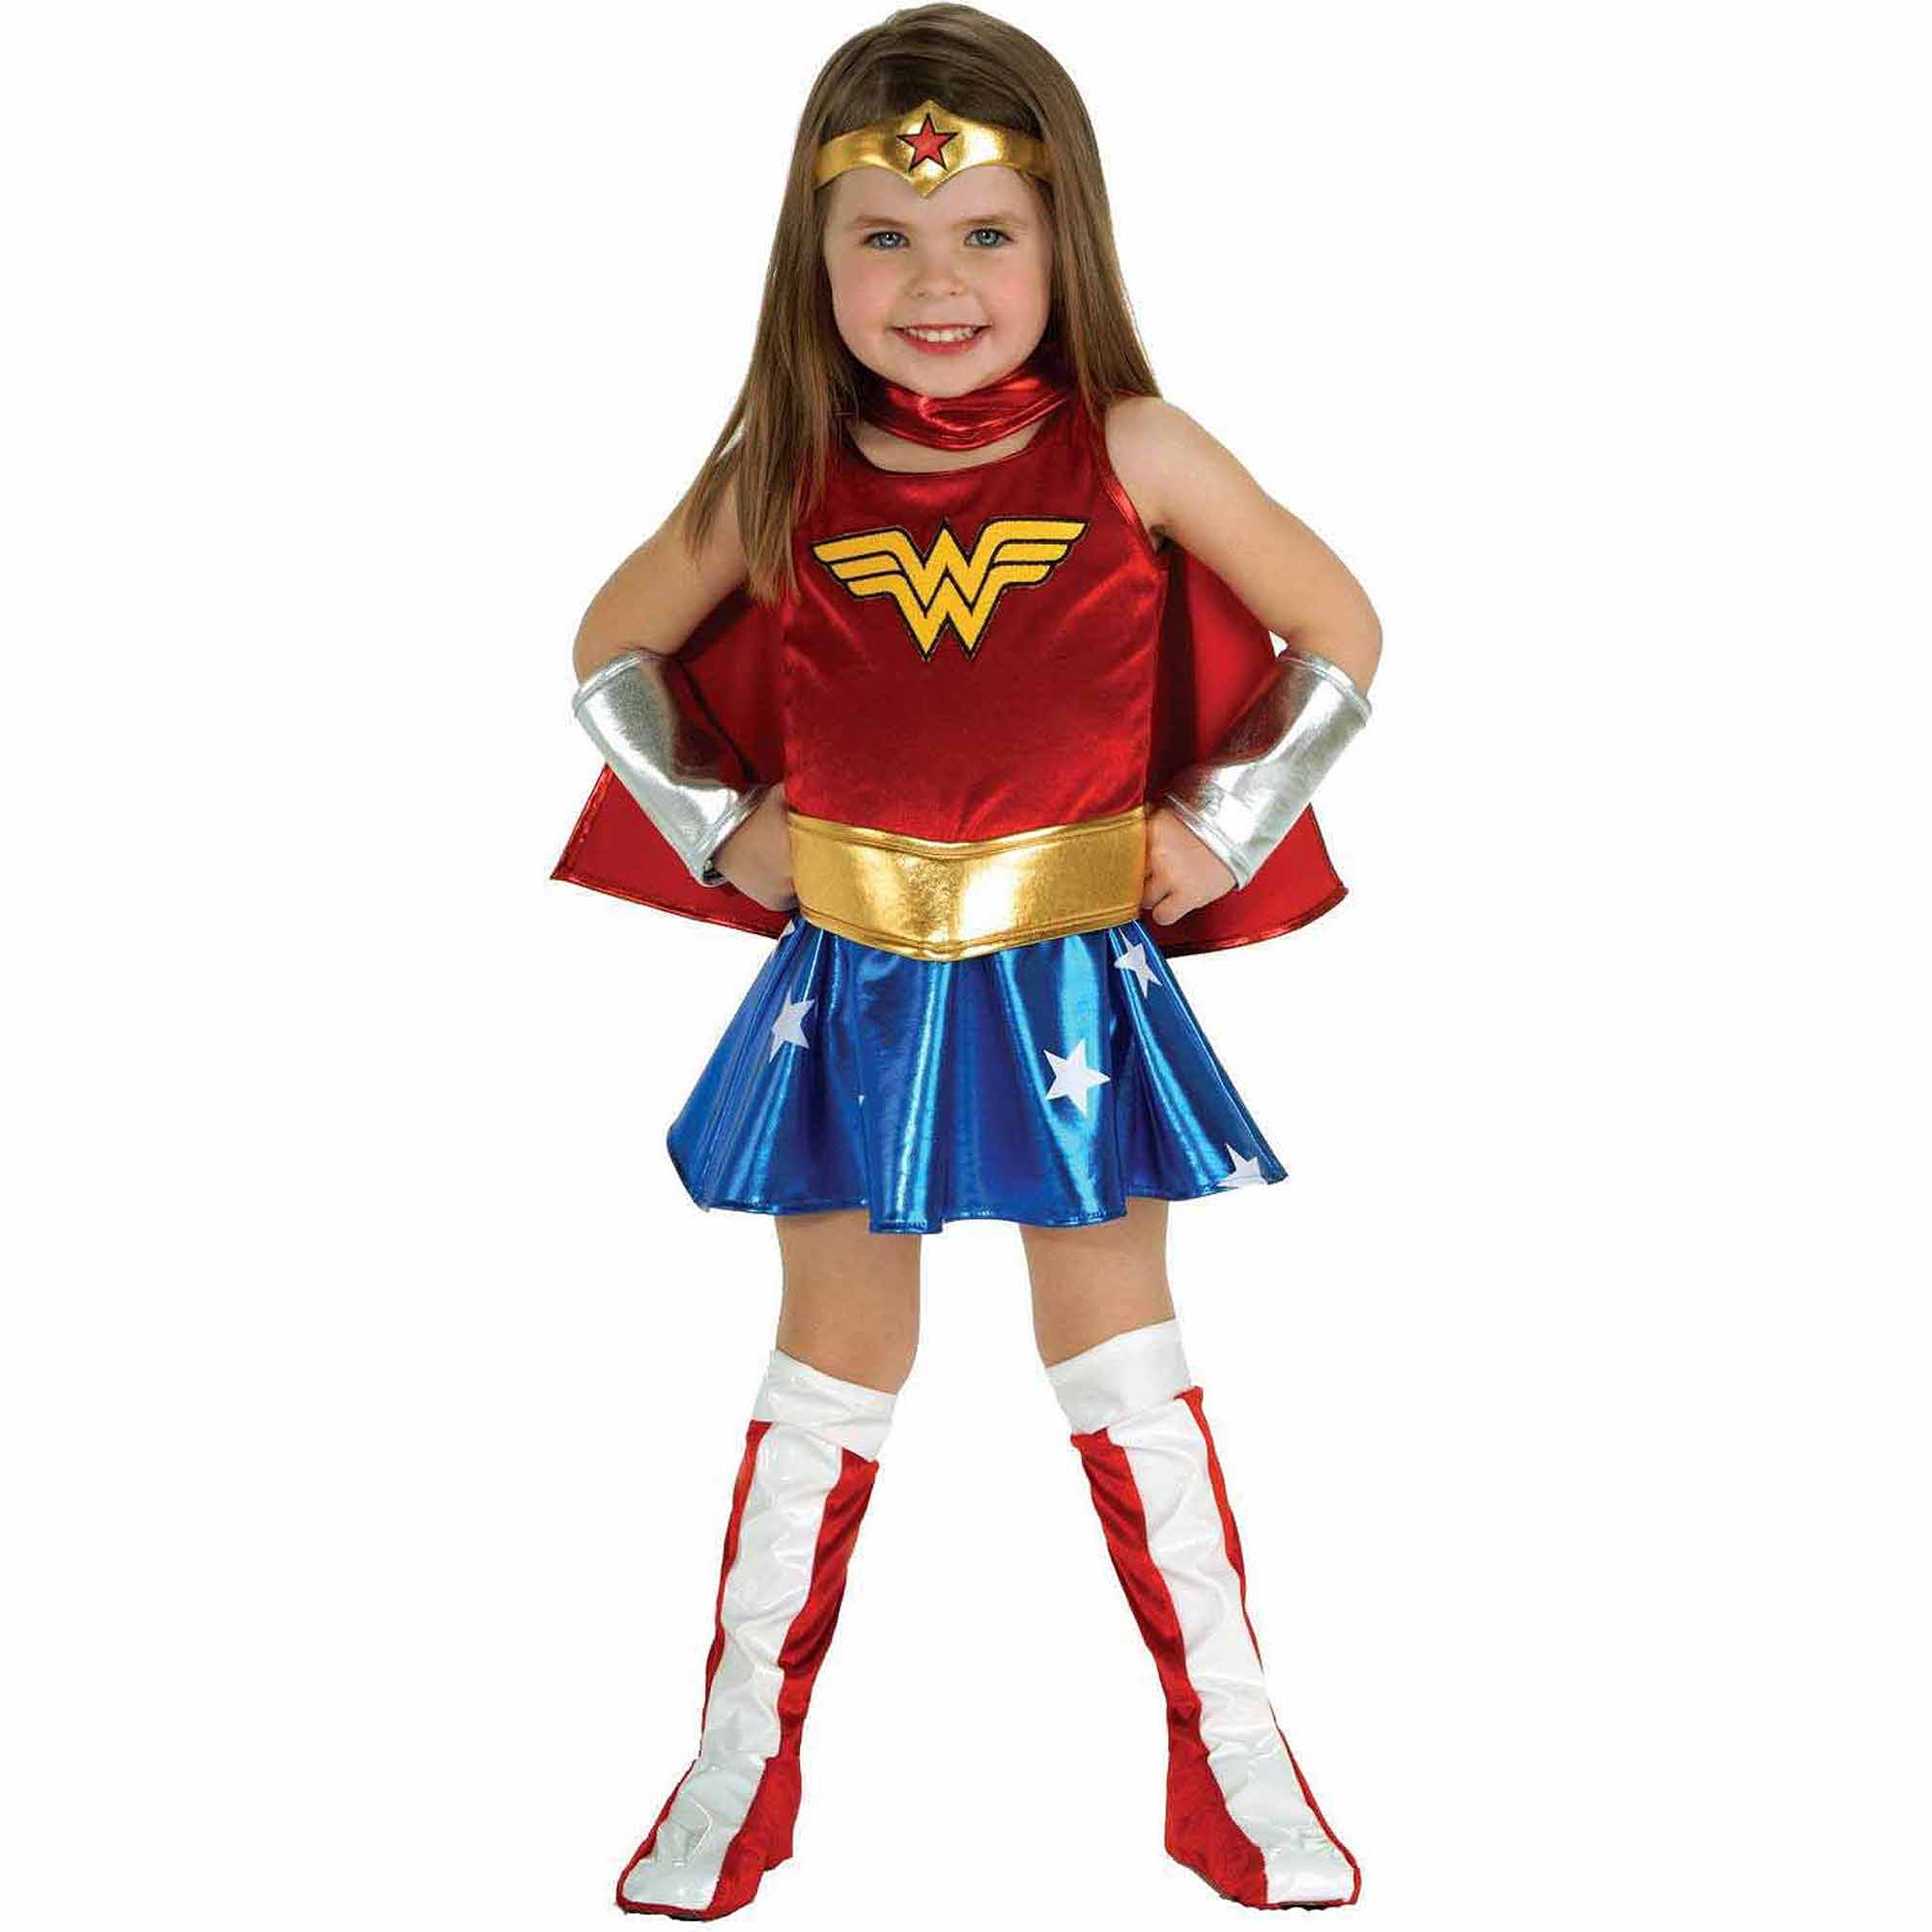 Wonder Woman Toddler Halloween Costume Size 3T-4T  sc 1 st  Walmart & Wonder Woman Toddler Halloween Costume Size 3T-4T - Walmart.com